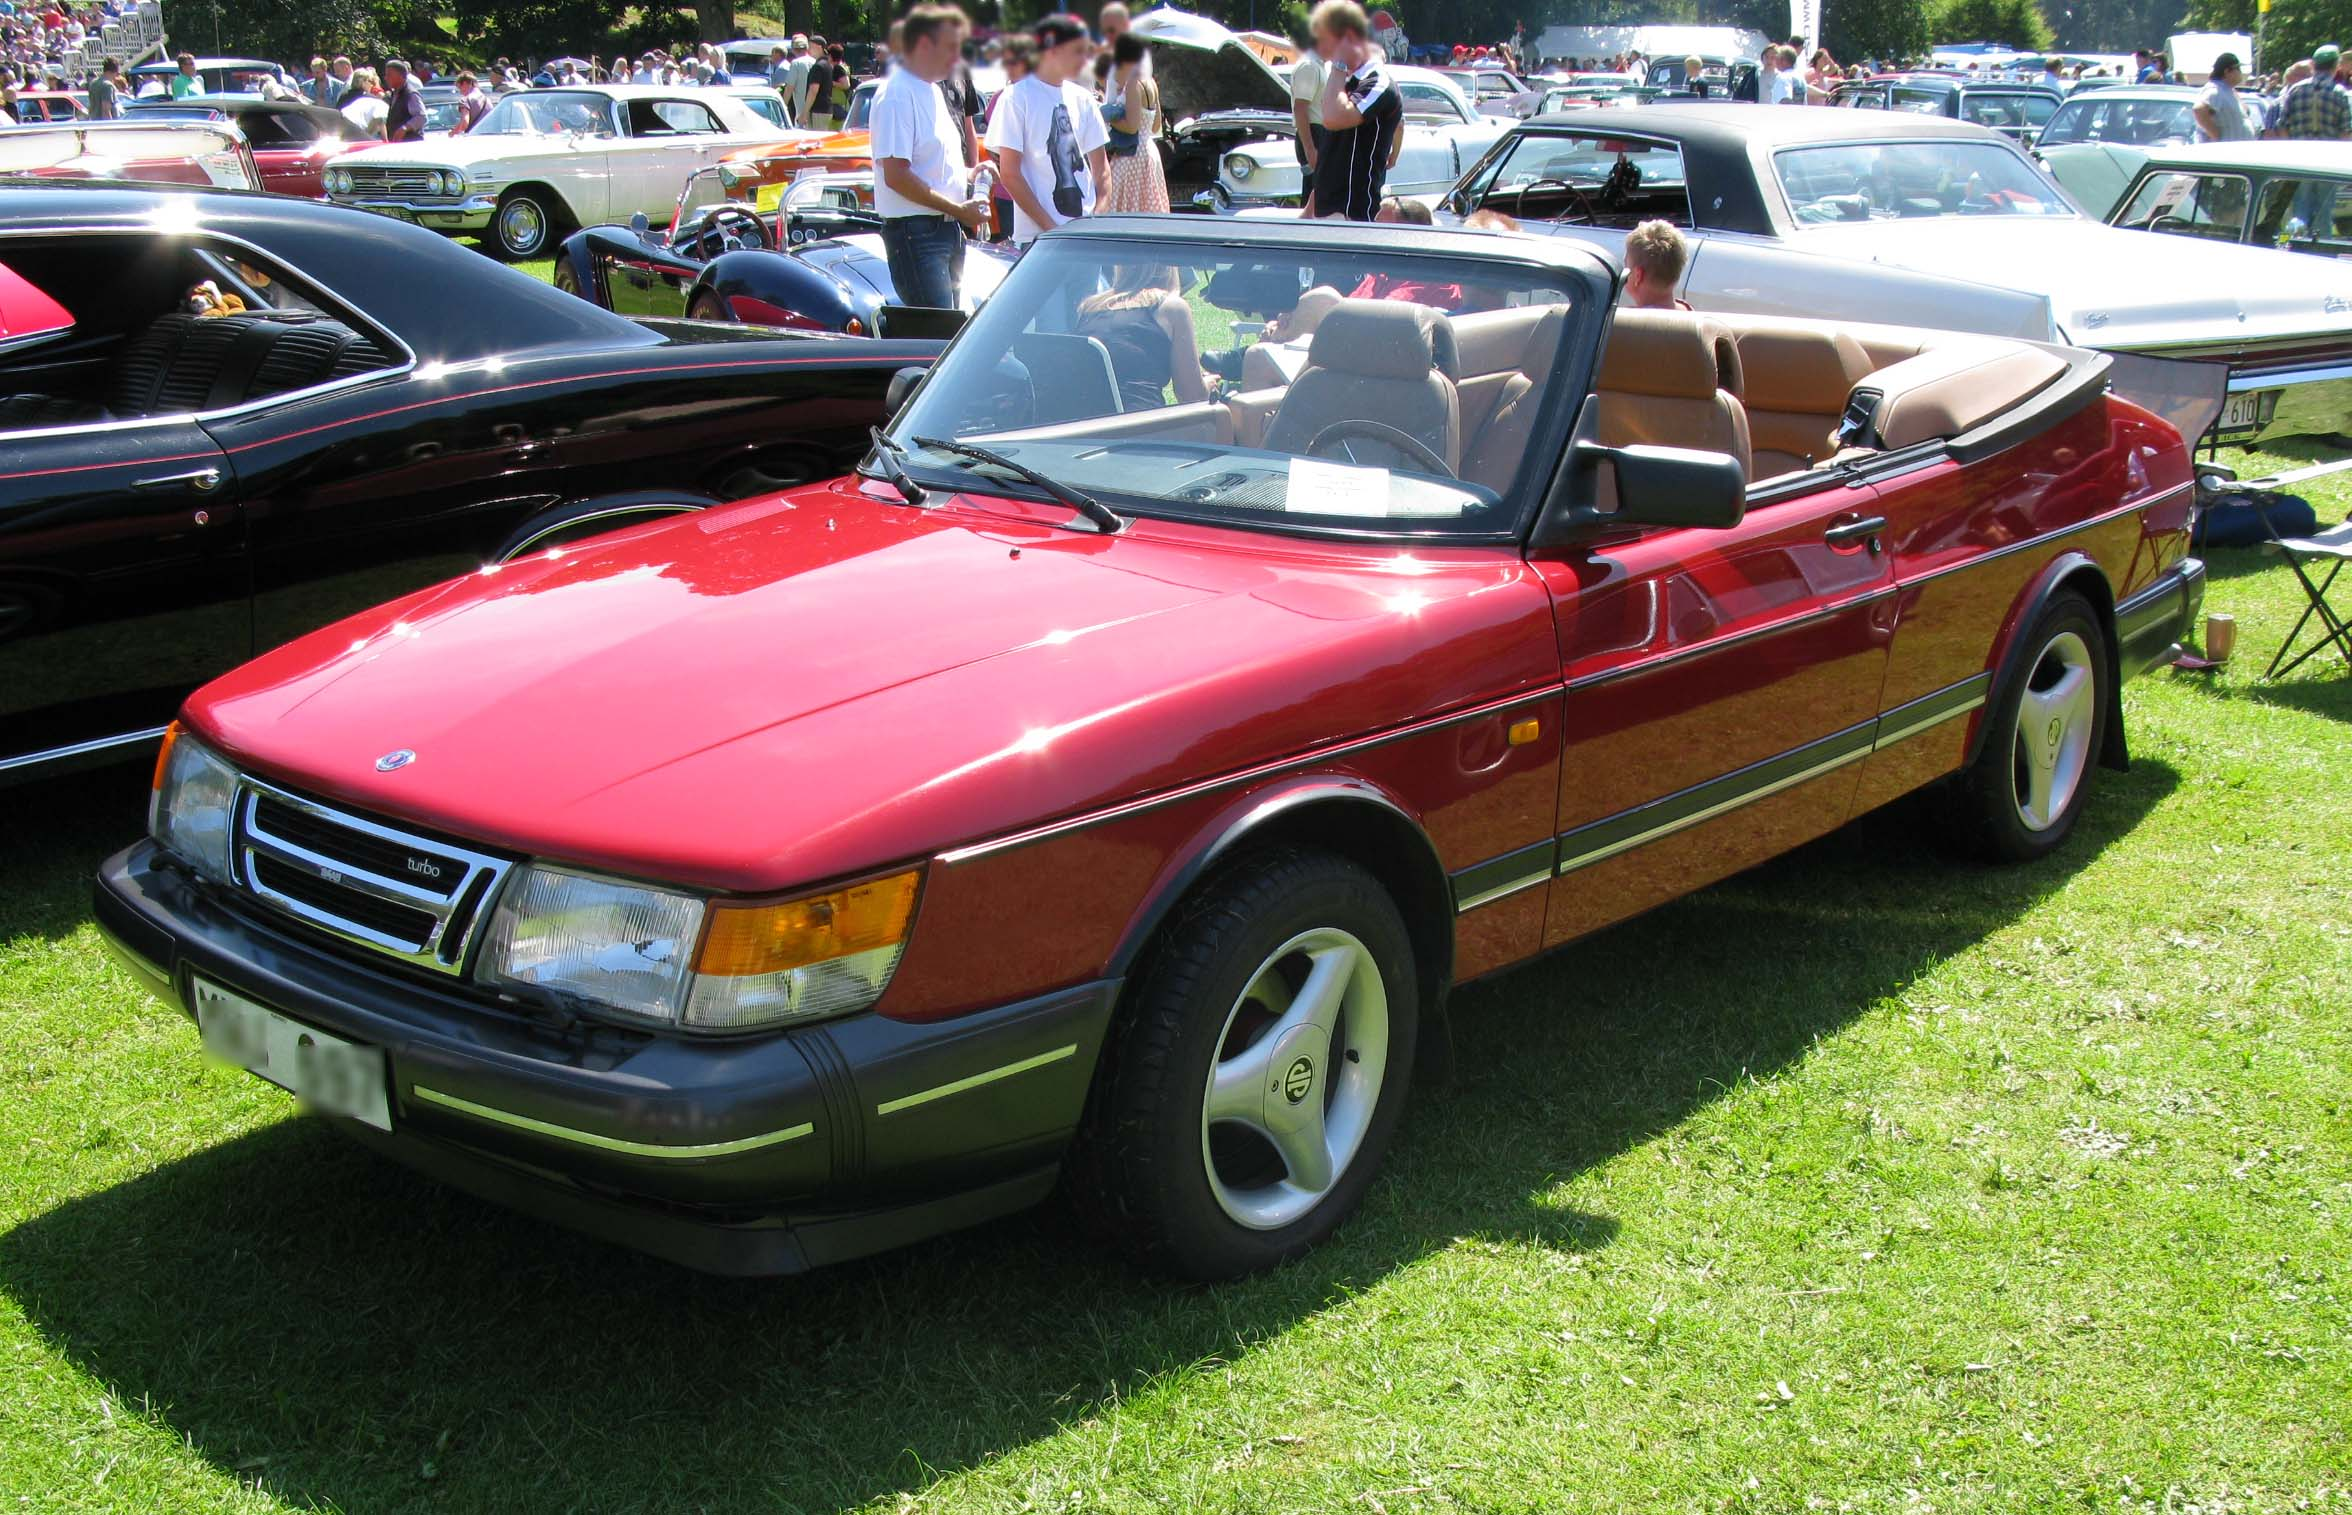 file 1987 saab 900 t16 wikimedia commons. Black Bedroom Furniture Sets. Home Design Ideas